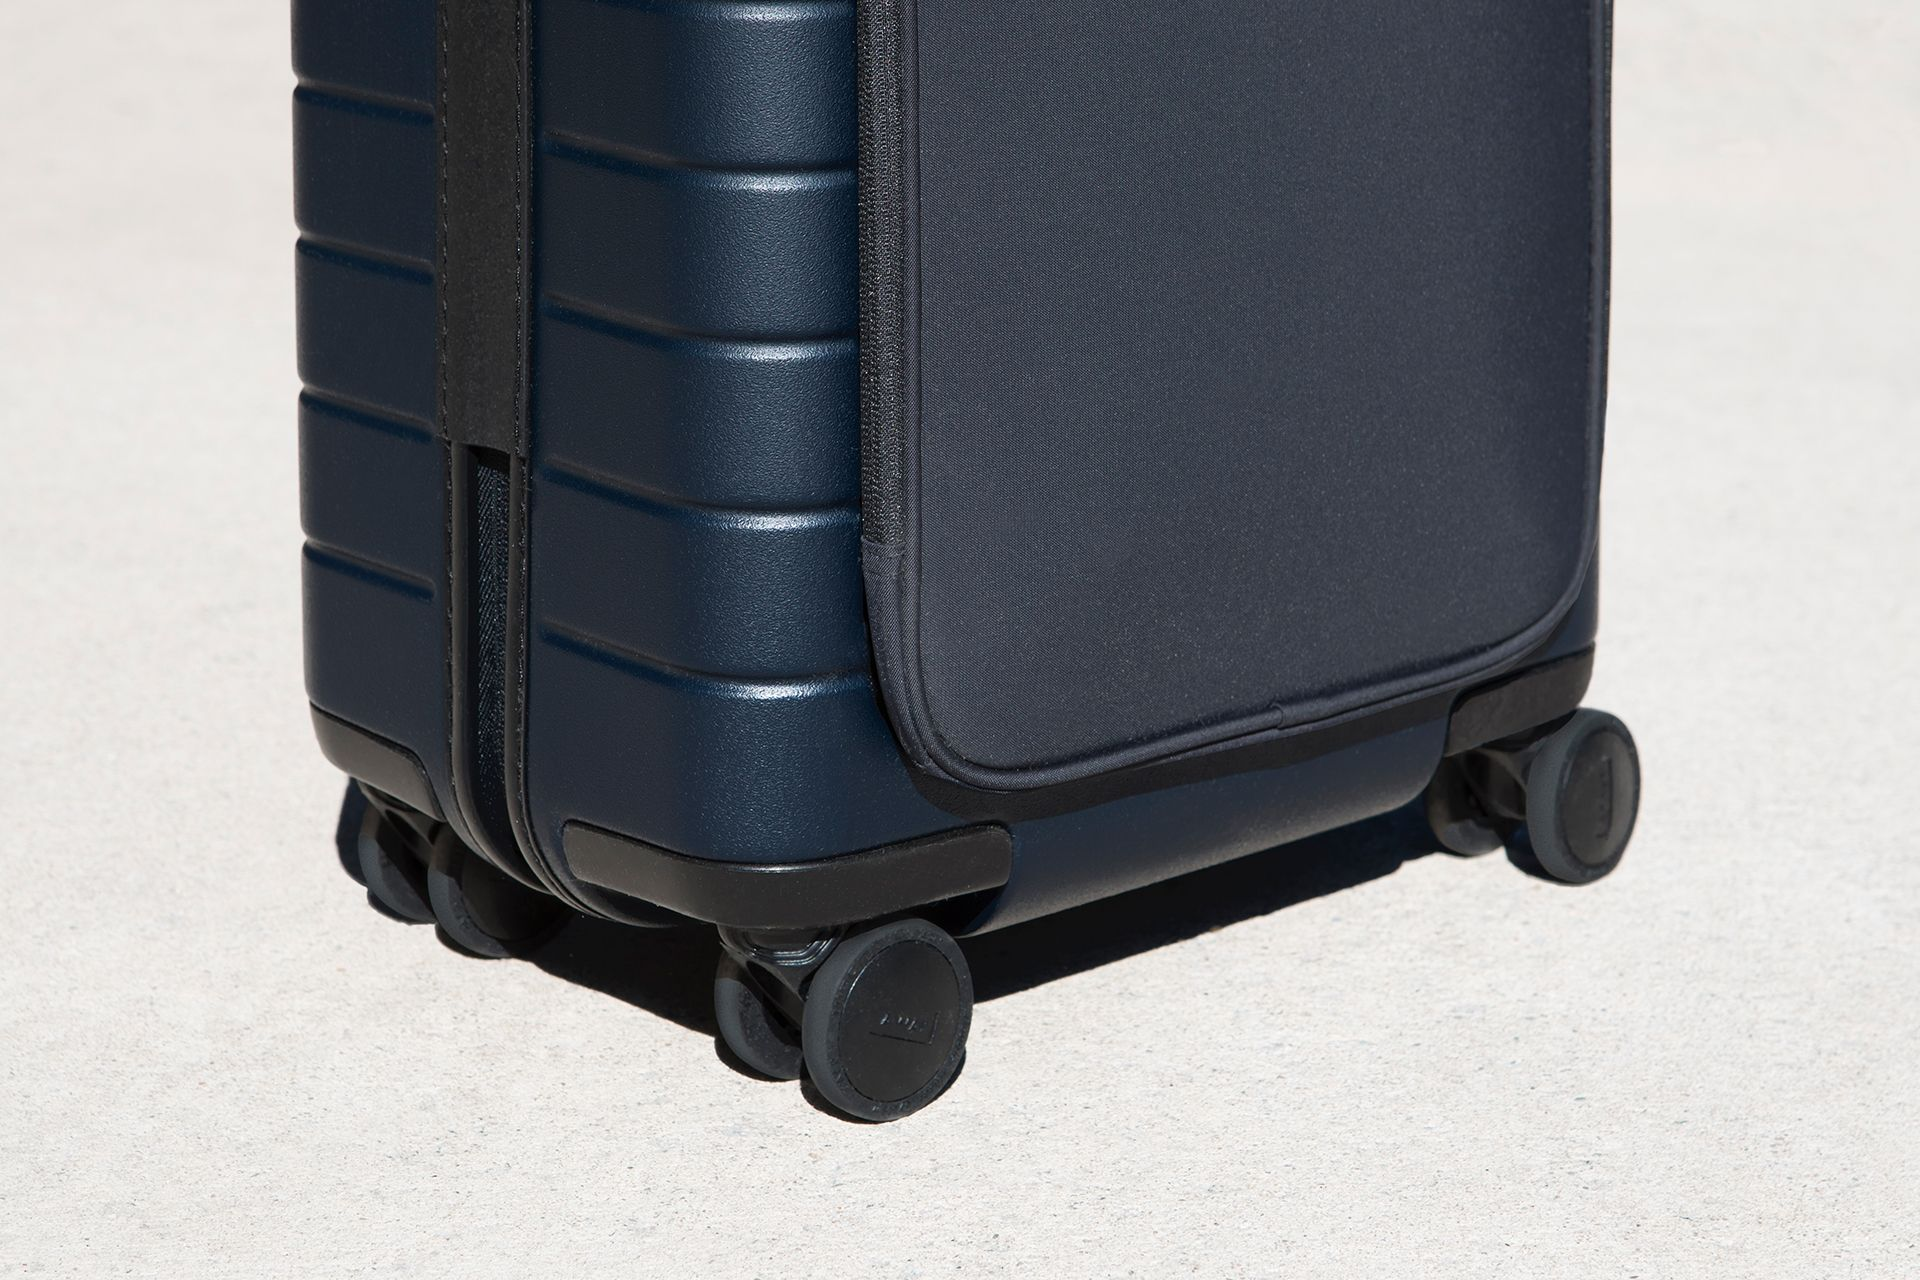 Away suitcase with pocket Pocket, Carry on, Suitcase